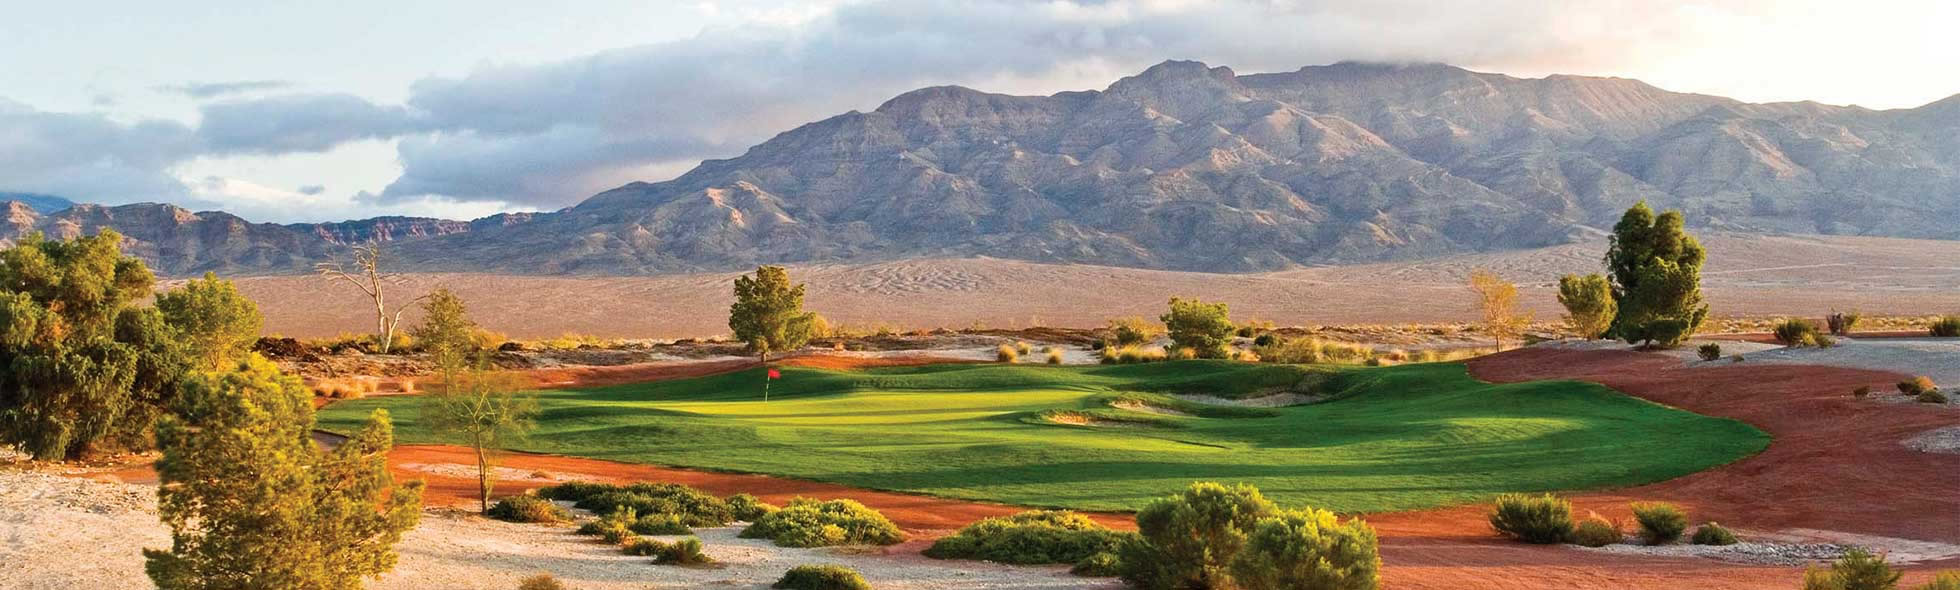 Know Before You Golf Vegas this Fall